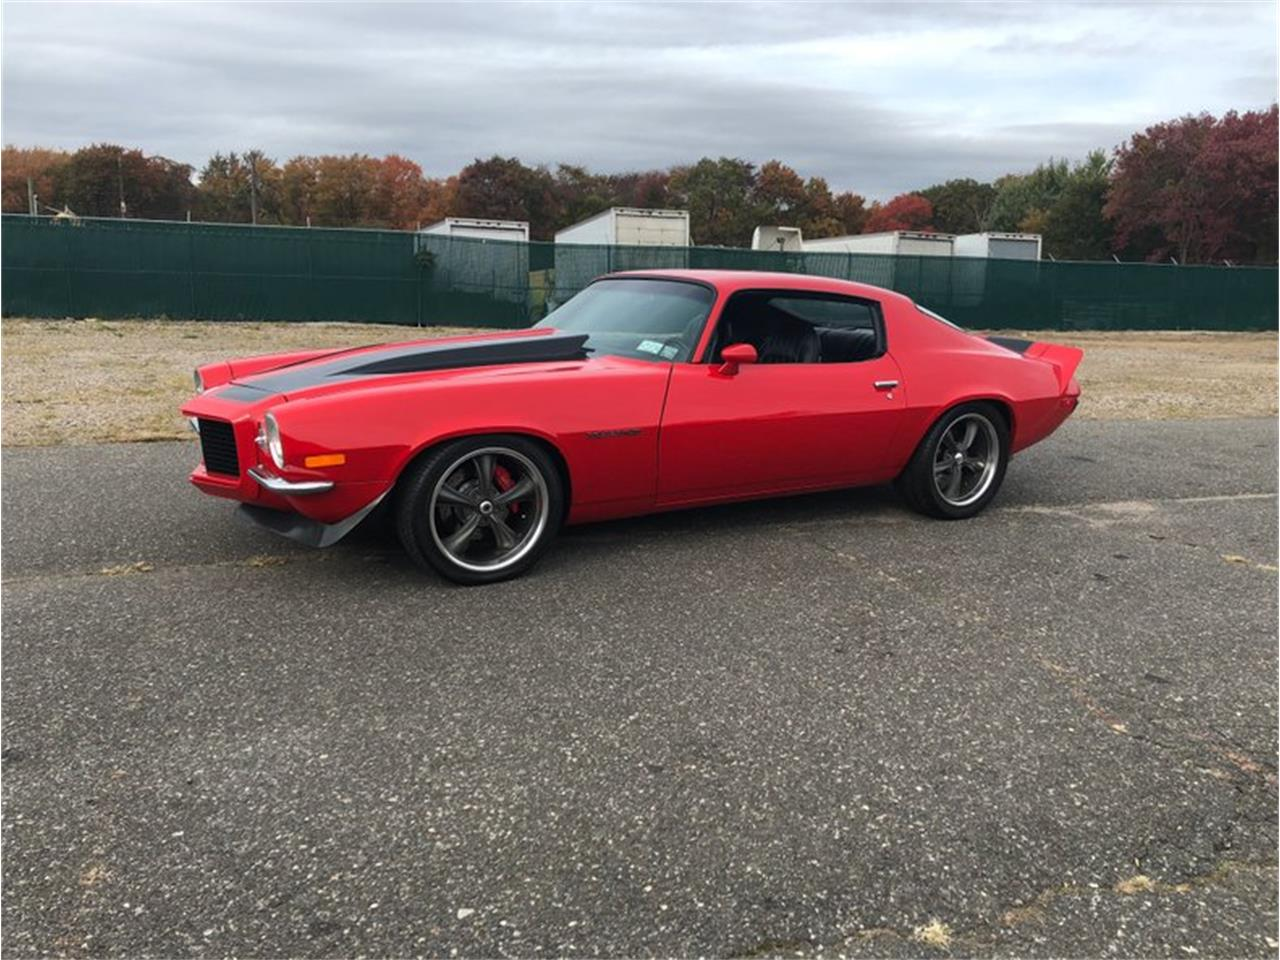 For Sale: 1970 Chevrolet Camaro in West Babylon, New York